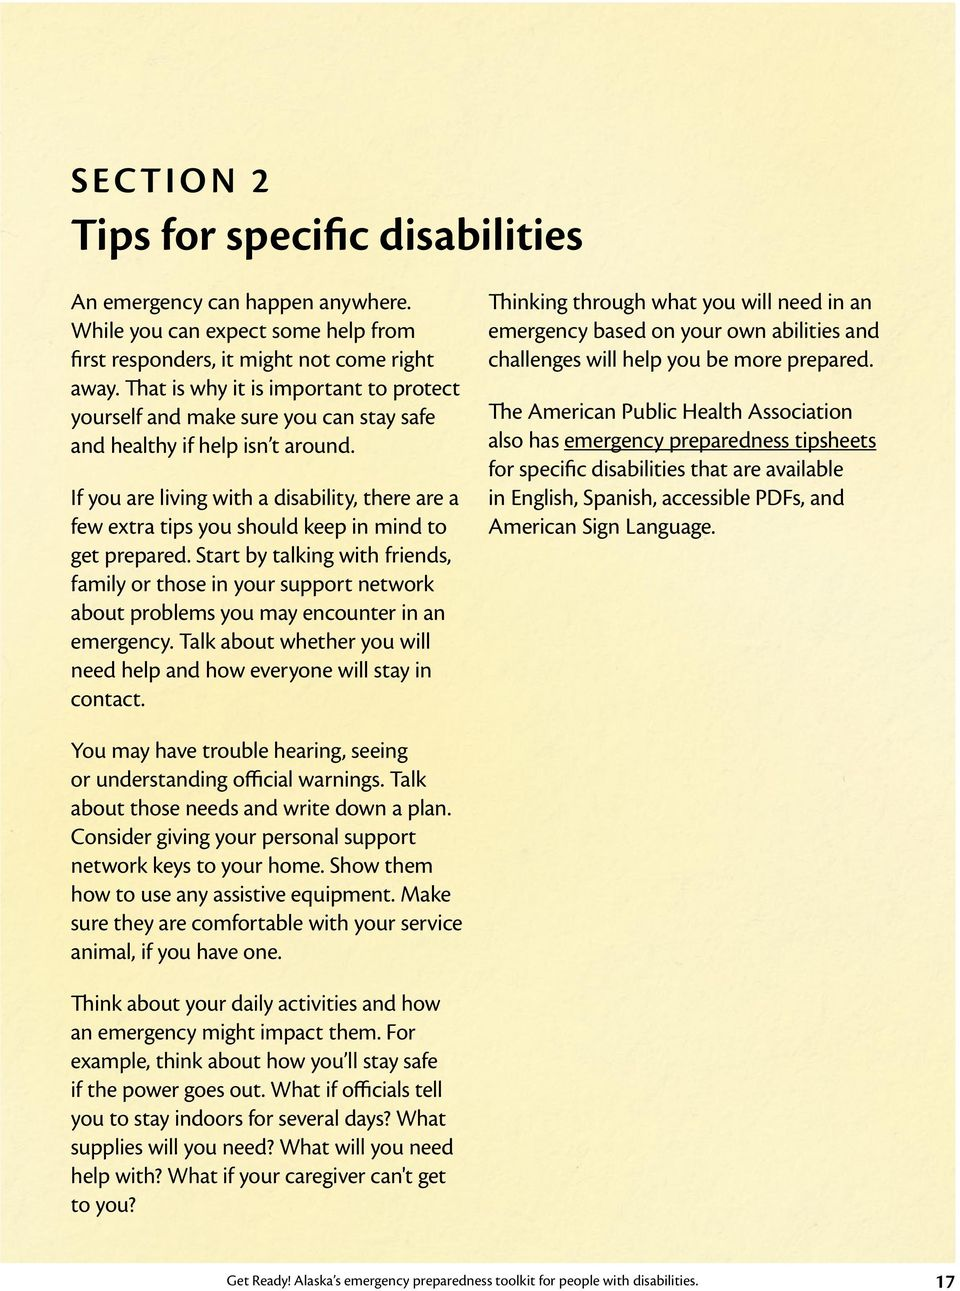 If you are living with a disability, there are a few extra tips you should keep in mind to get prepared.